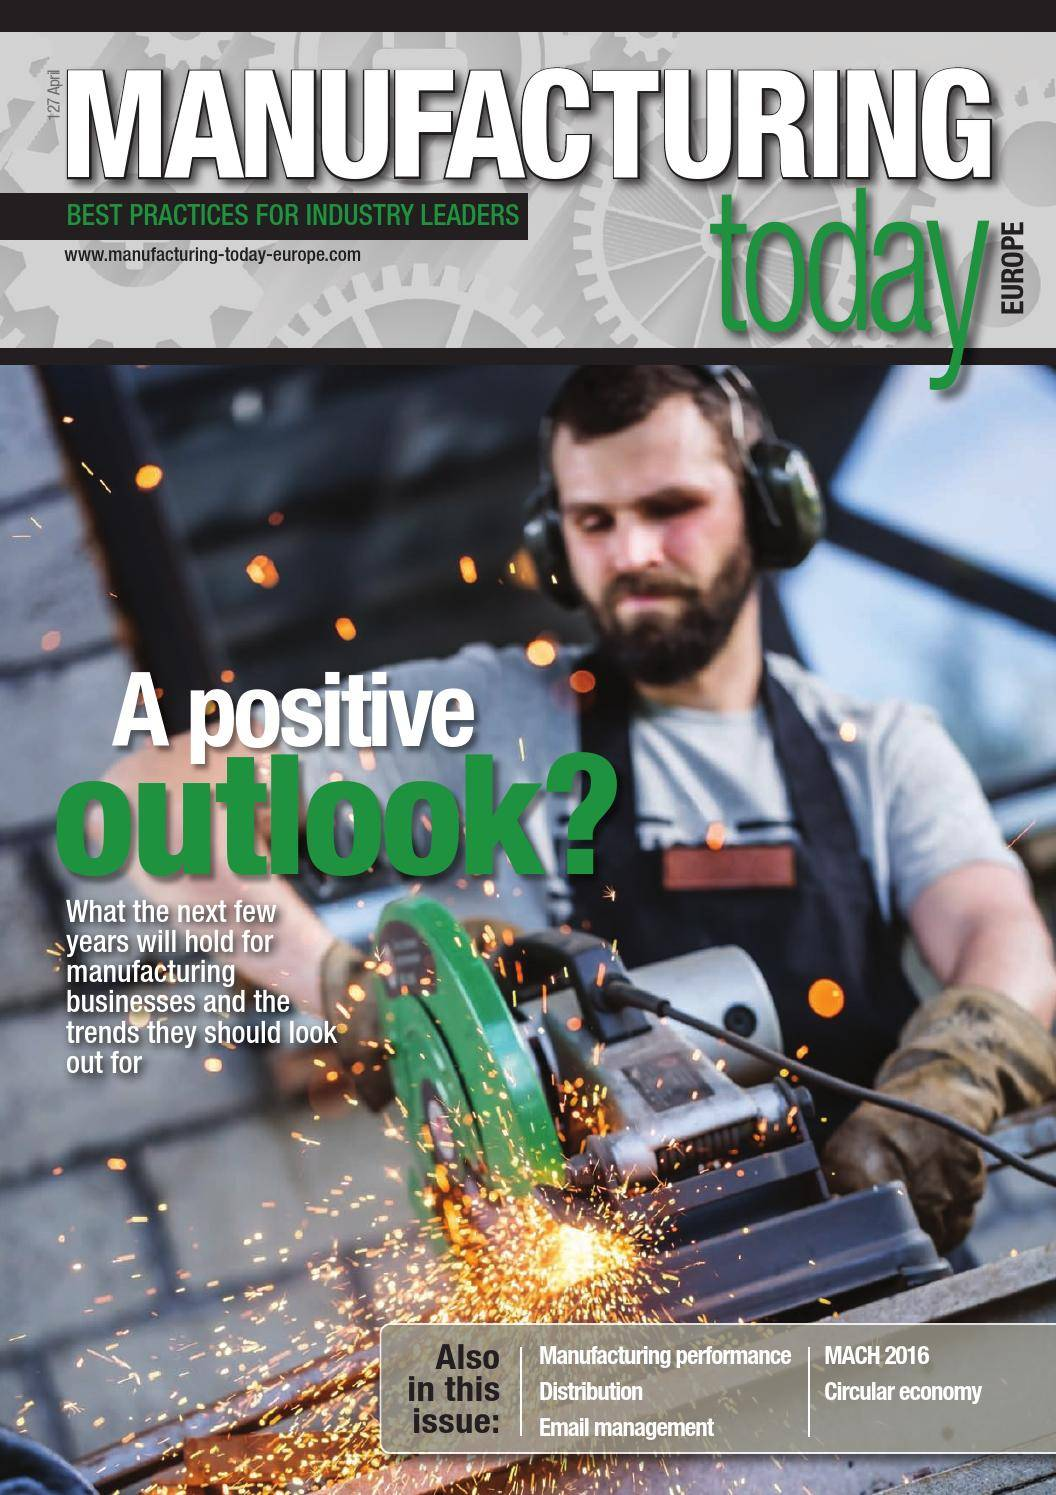 Manufacturing Today Europe - April 2016